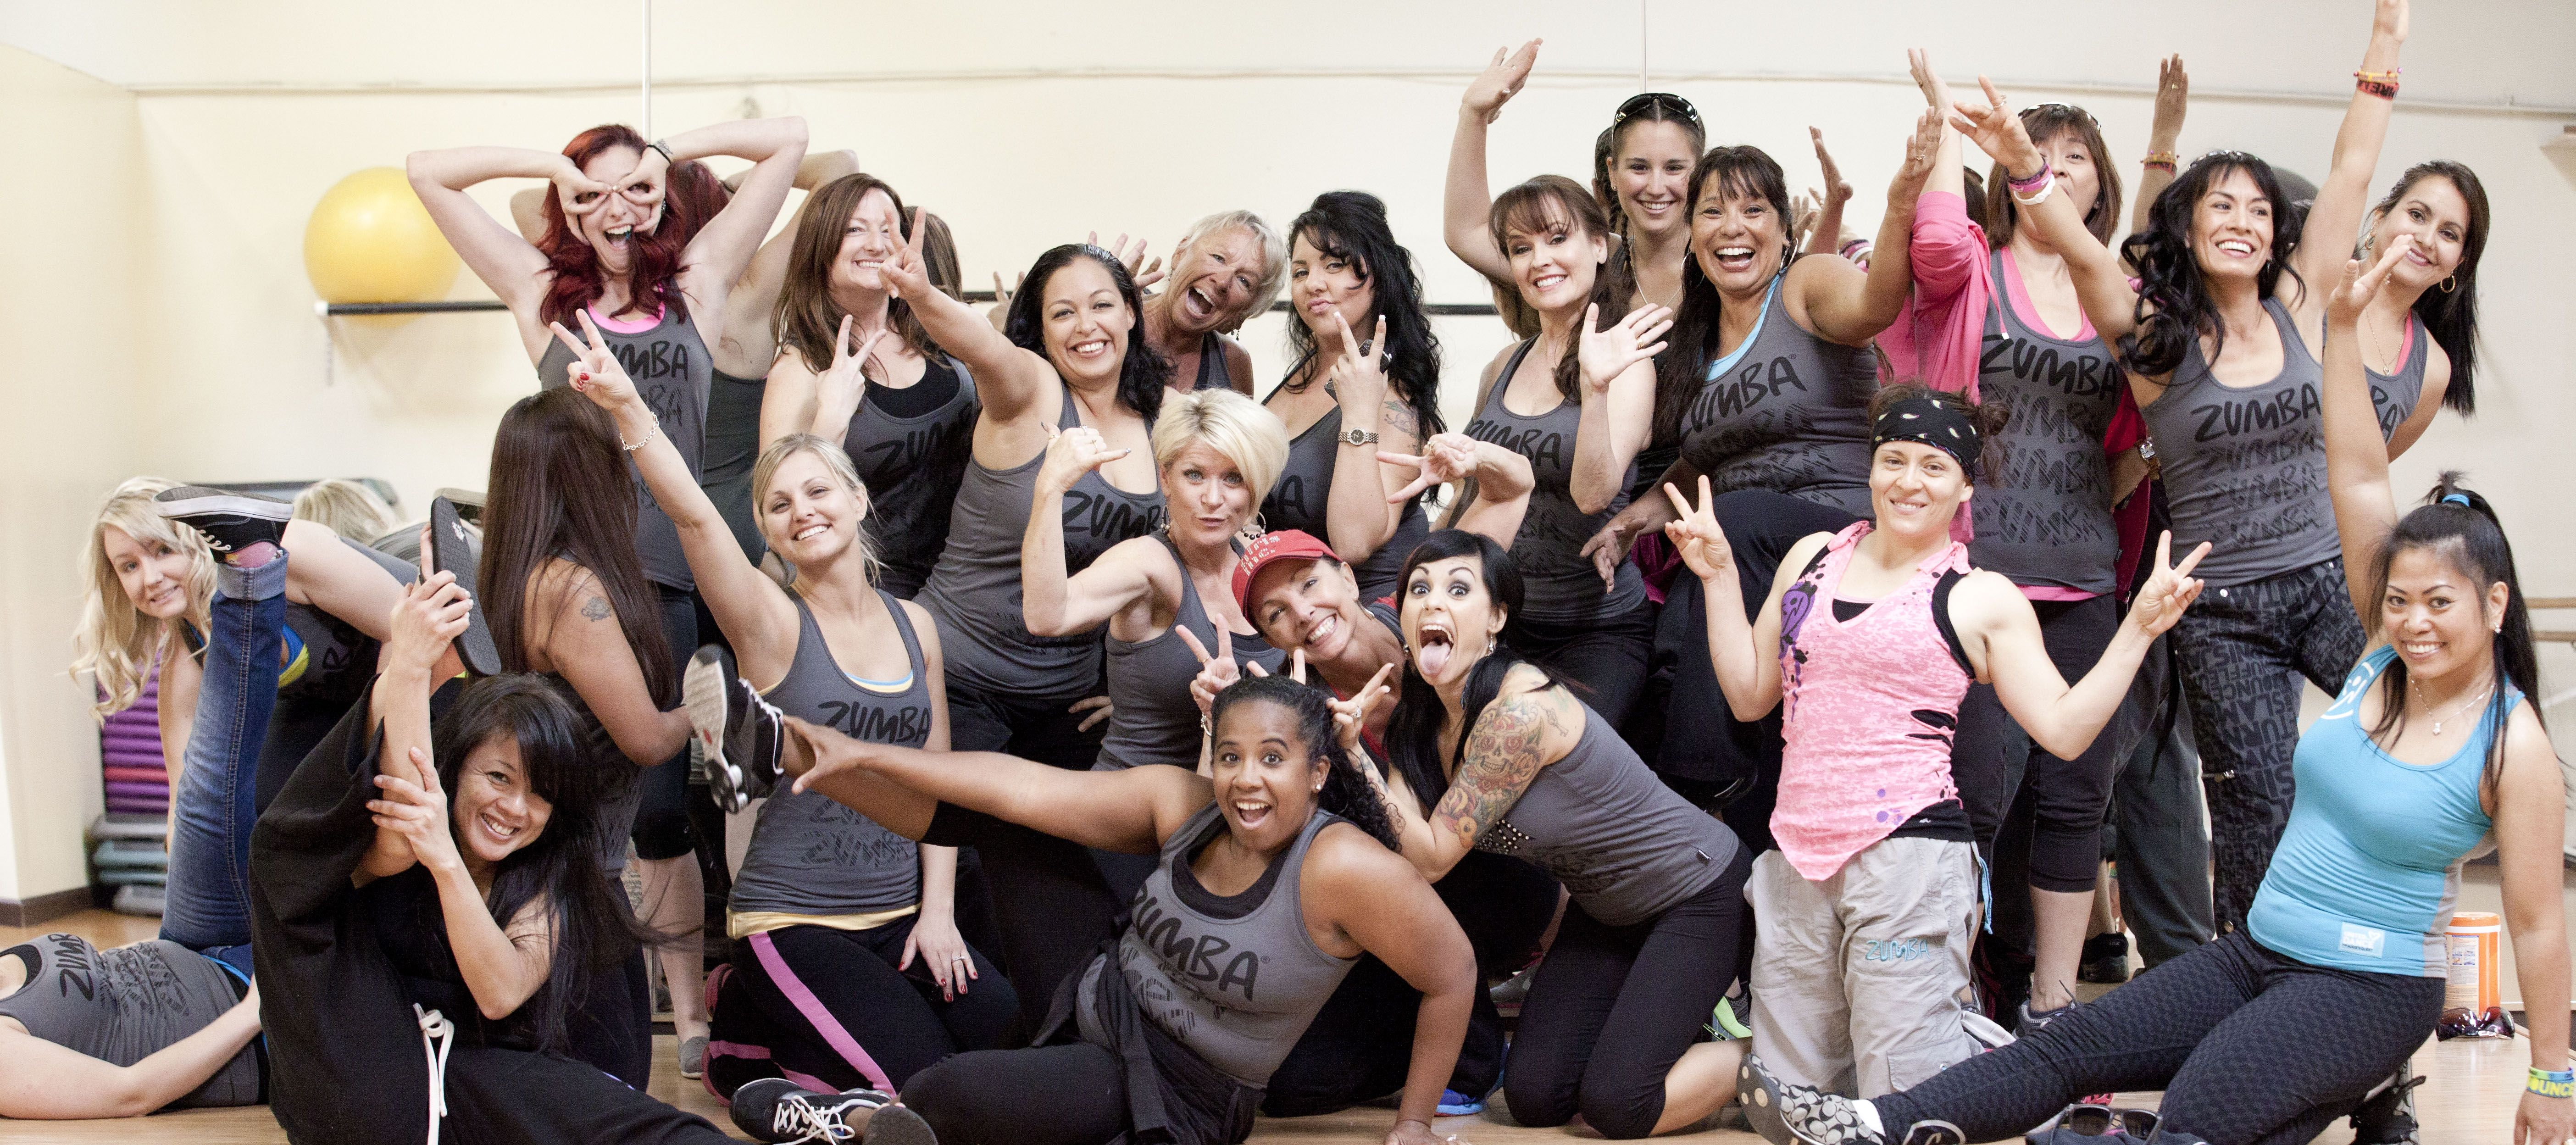 Excited temecula zumba peeps about to leave for los